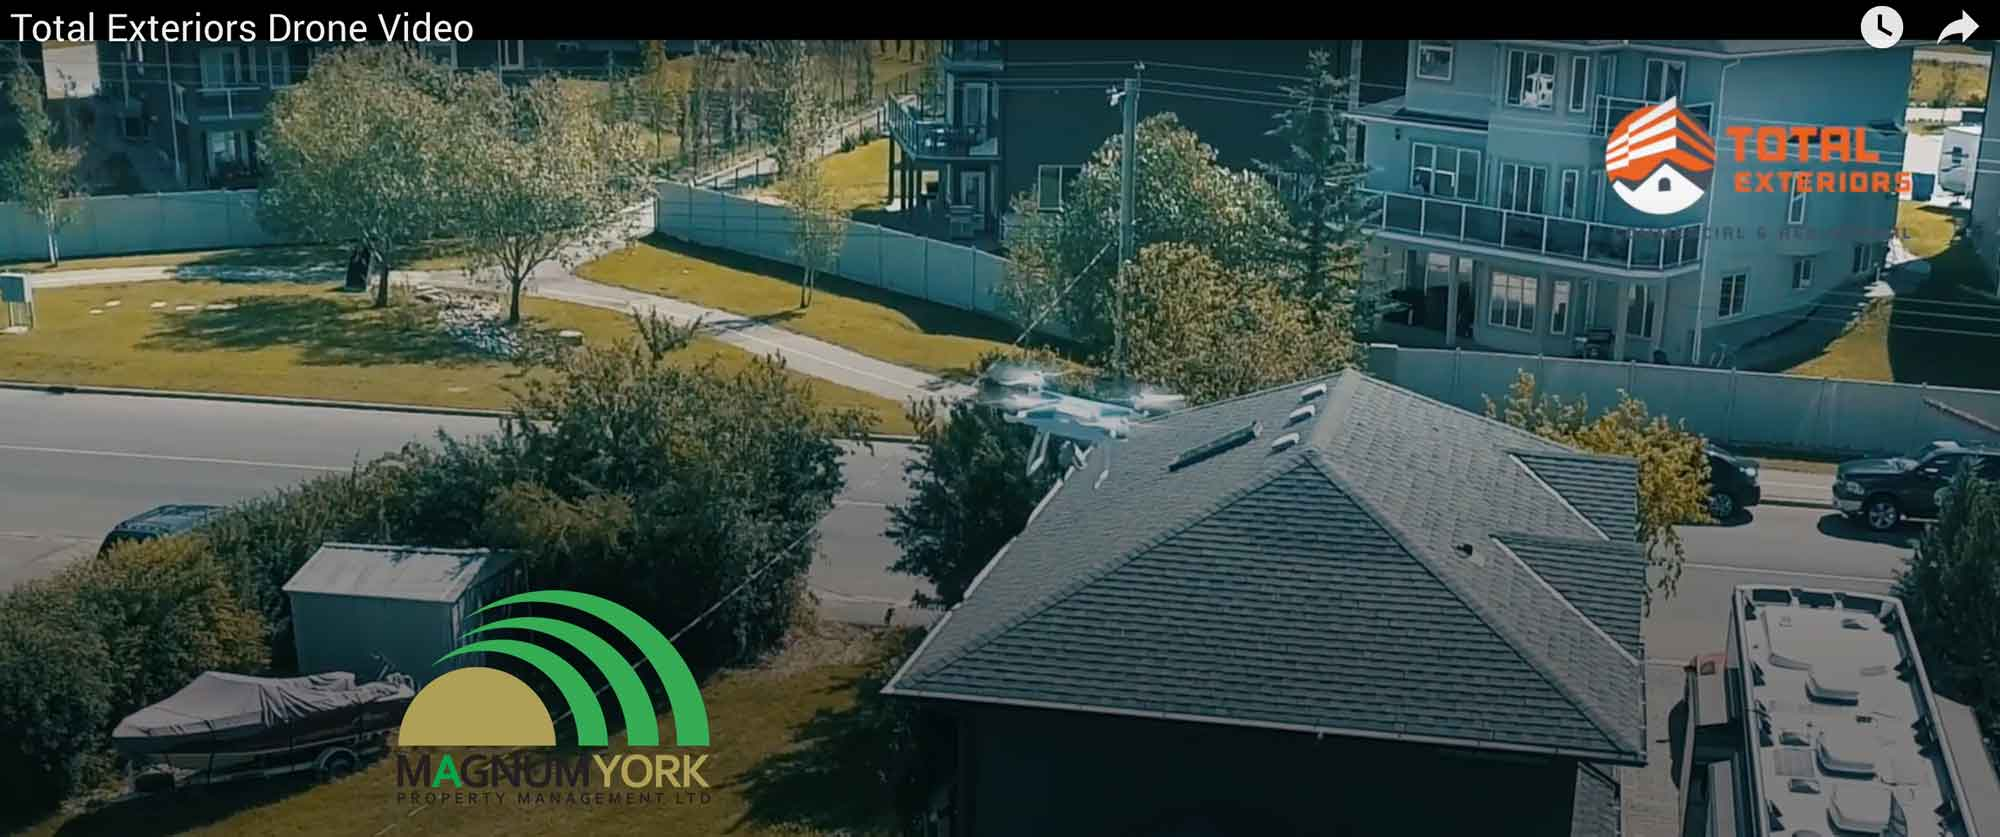 total exteriors drone magnum york vendor program